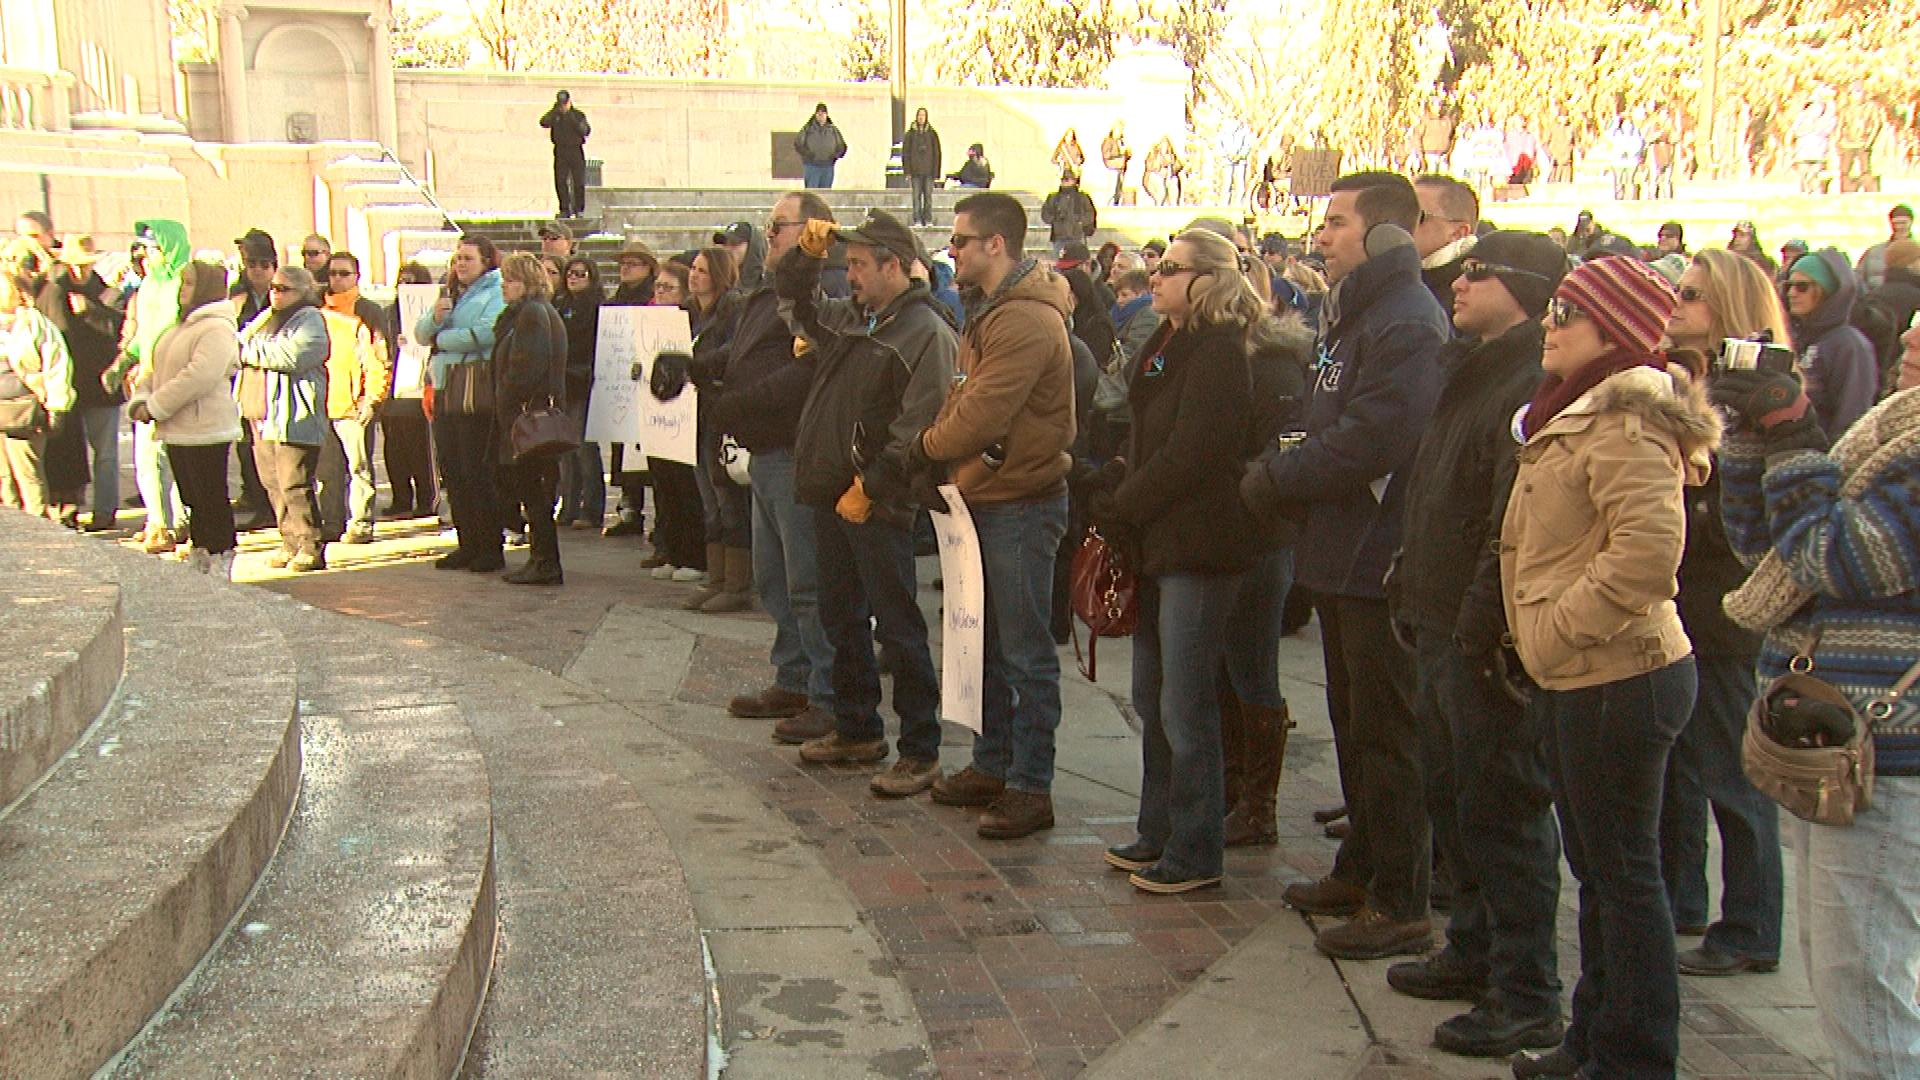 The gathering in Civic Center Park Saturday morning (credit: CBS)